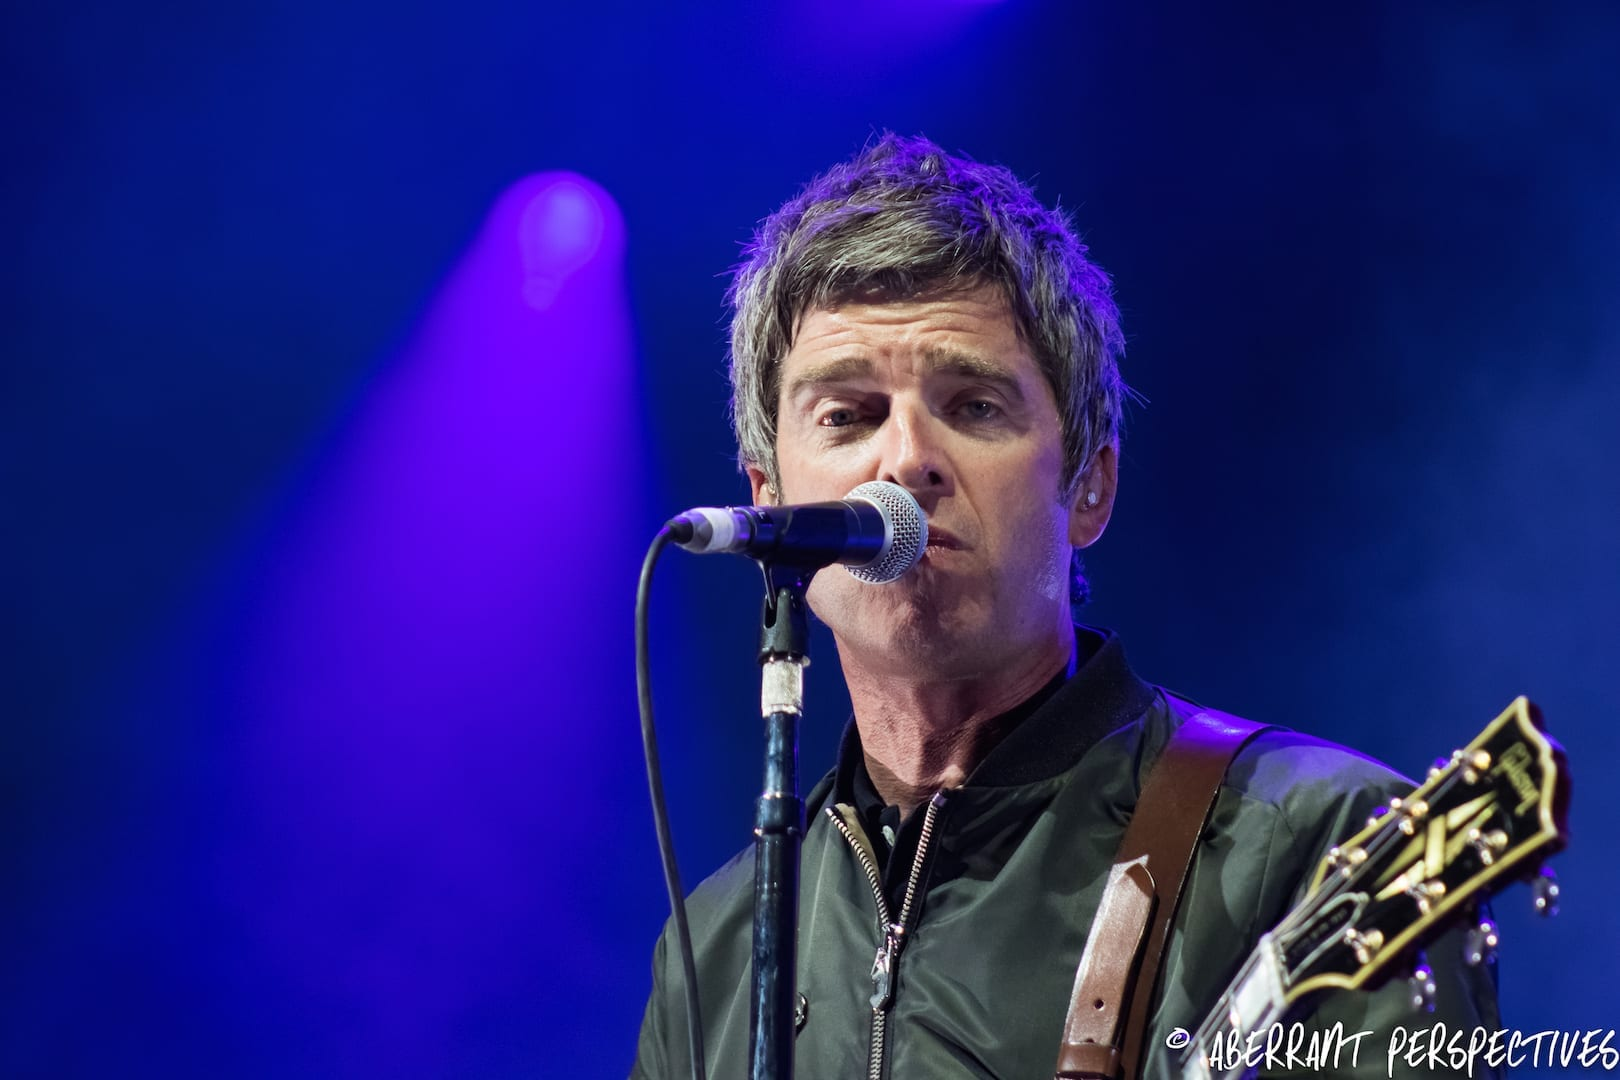 Music Photographer,Noel Gallagher's high flying birds, See You In The Fields - Who's Calling Me to Kendal Calling